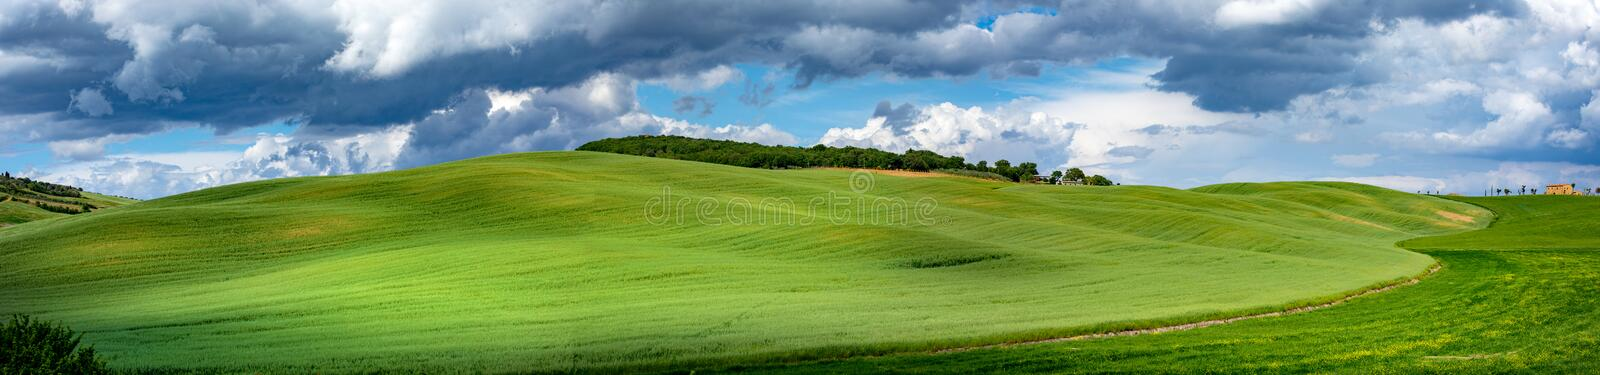 Tuscany spring, rolling hills on spring . Rural landscape. Green fields and farmlands. Italy, Europe royalty free stock photos